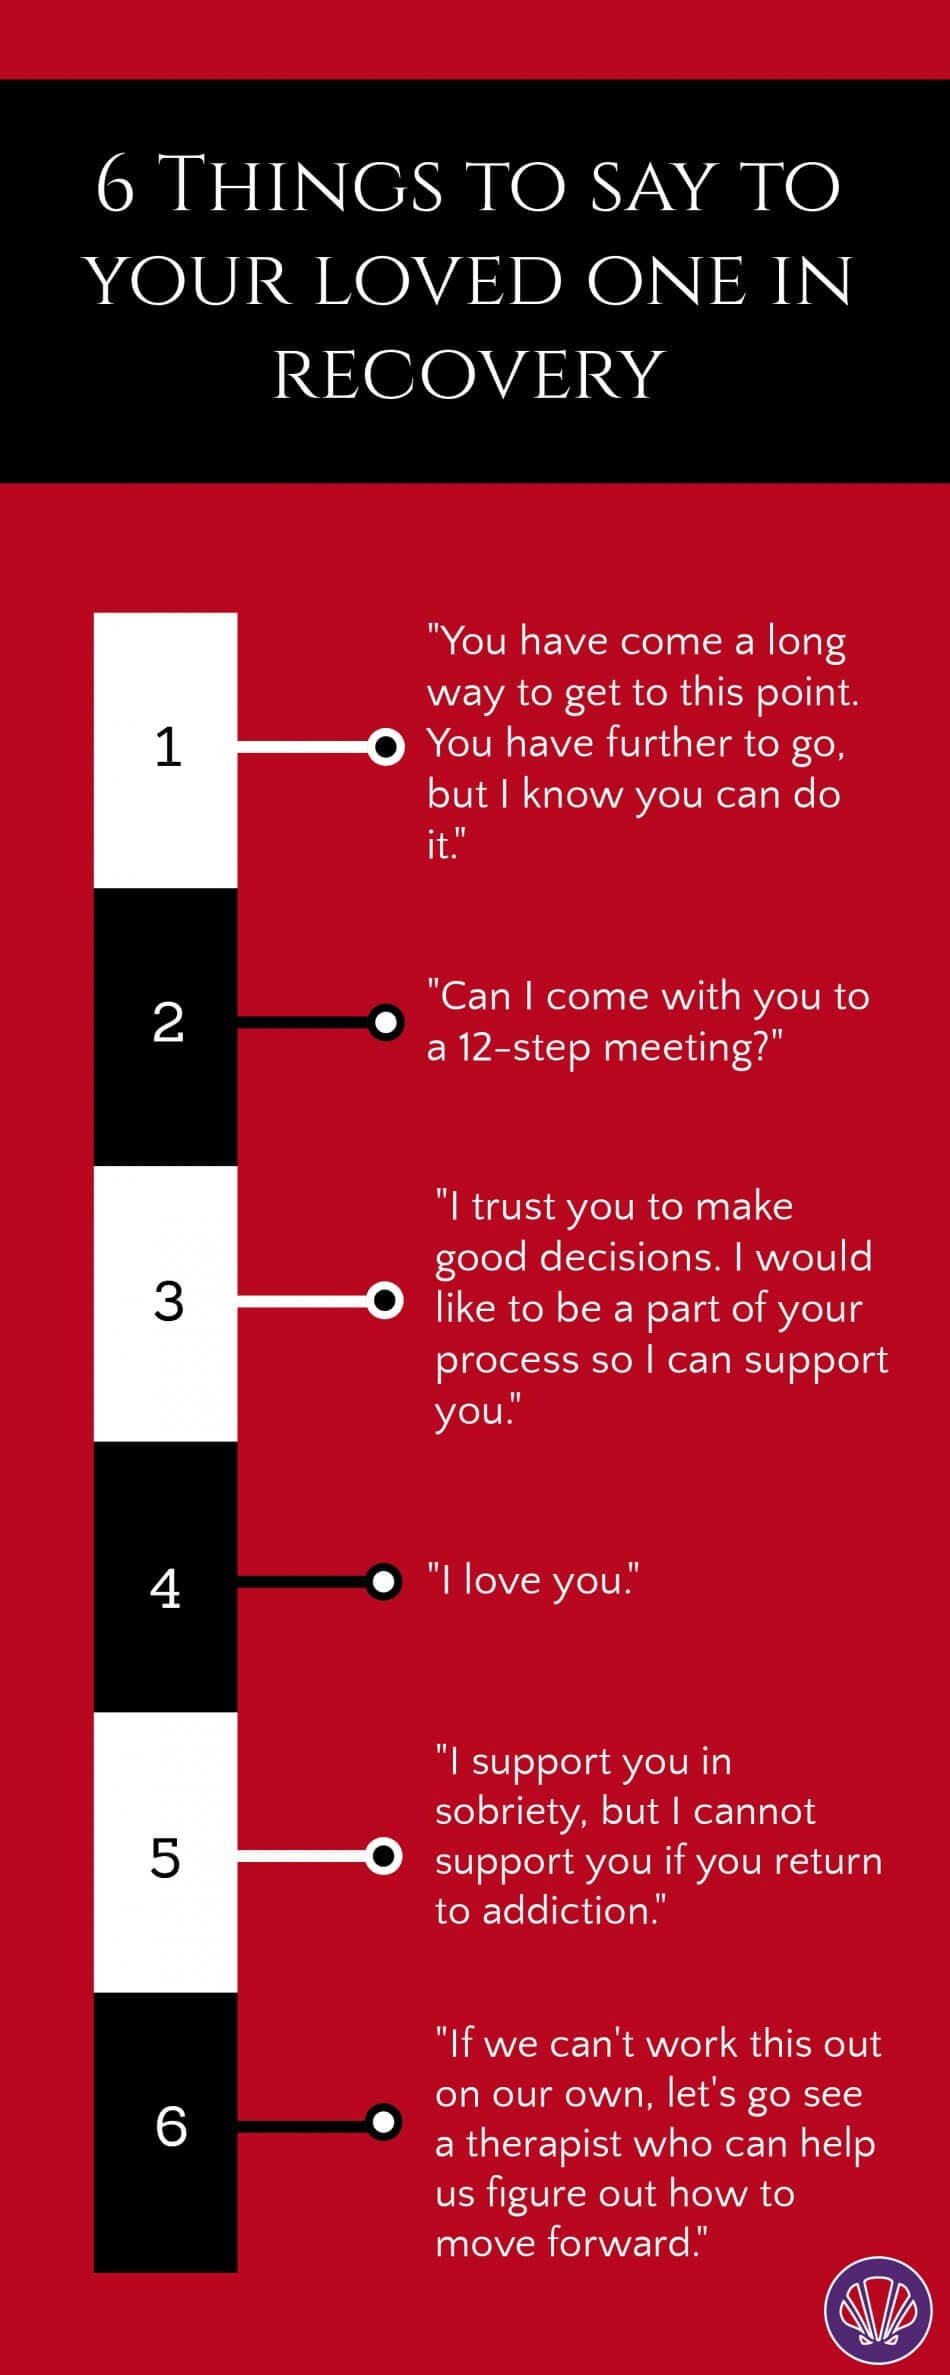 Infographic on six things to say to your loved one in recovery